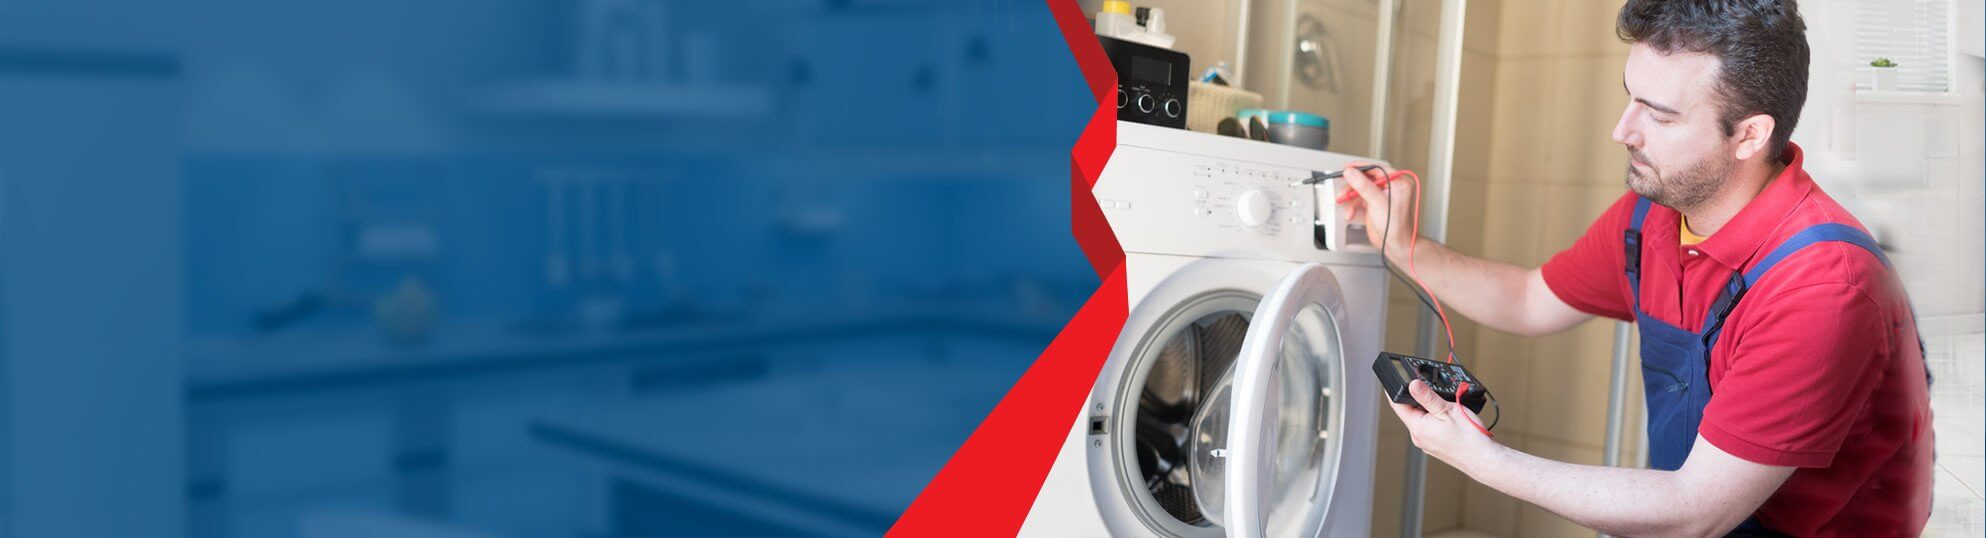 Our professional staff do washing machine diagnostic in London!